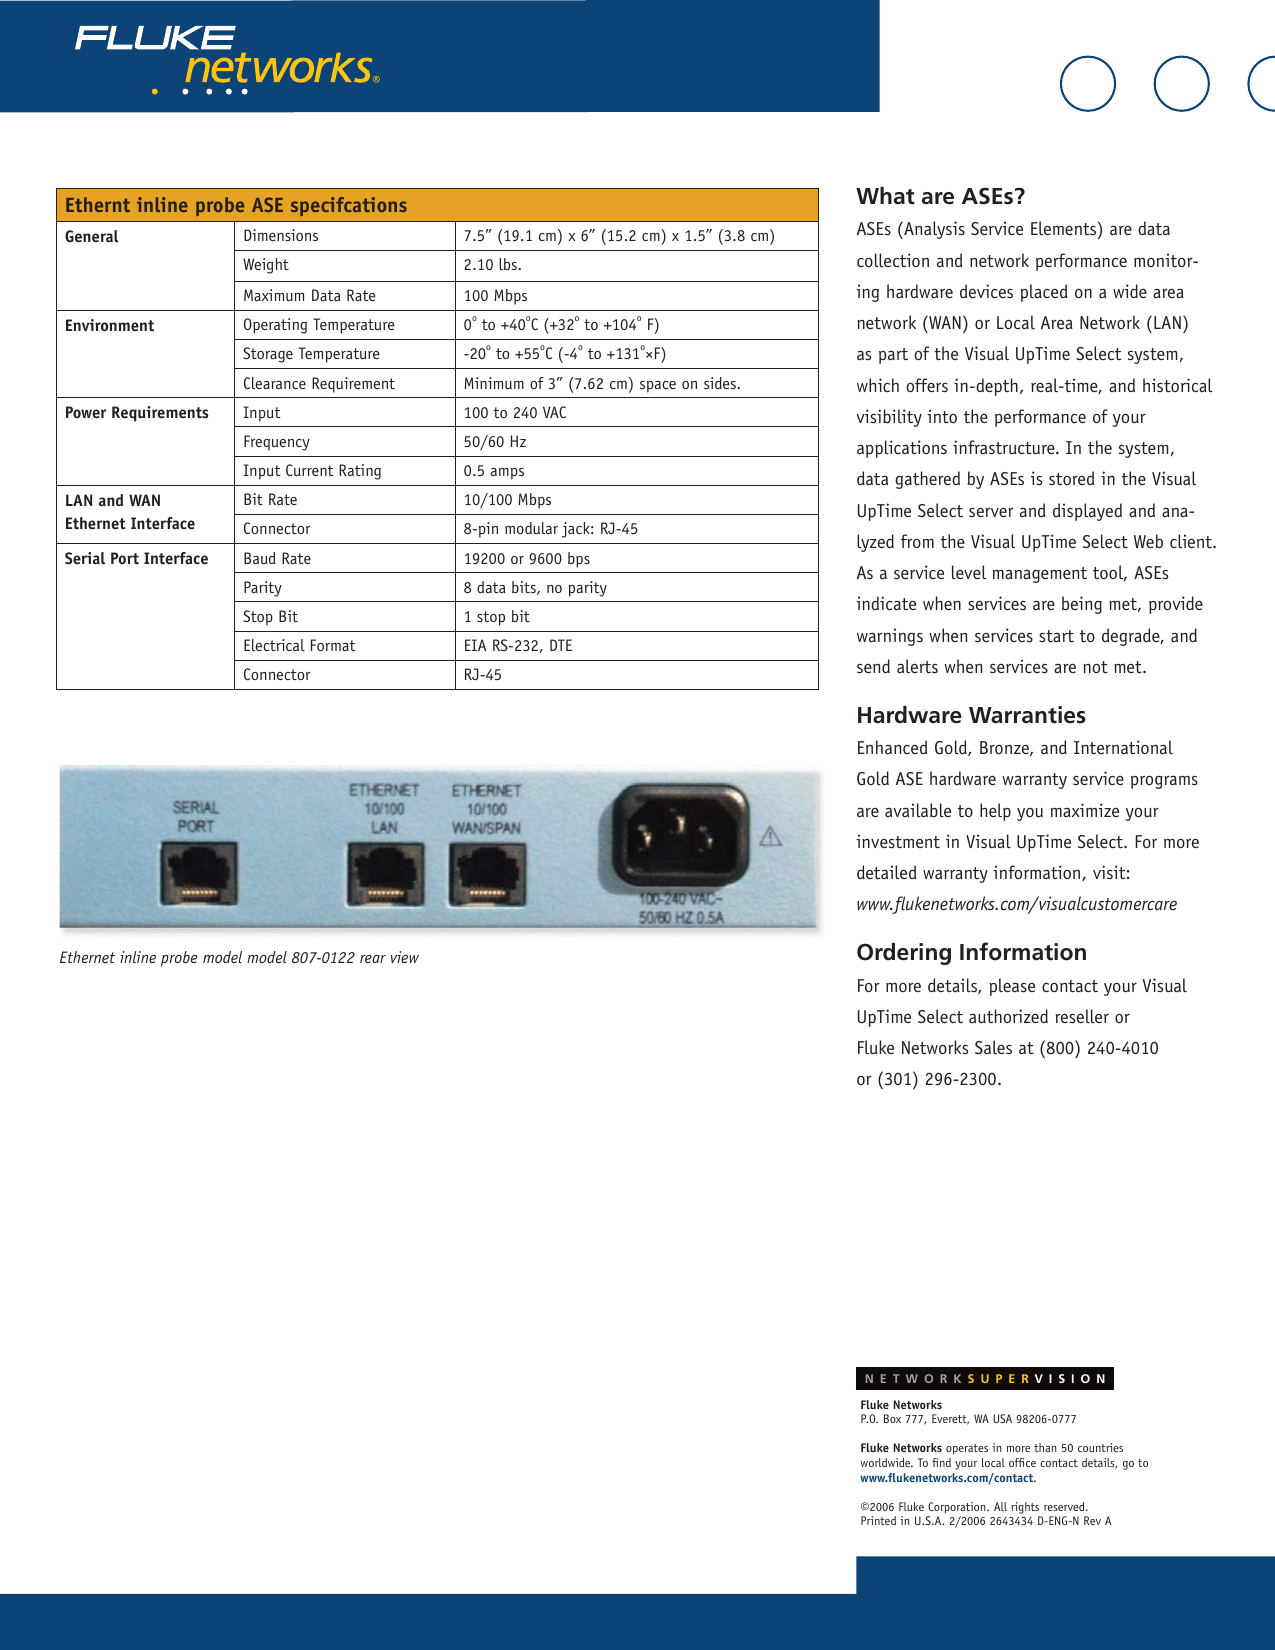 Fluke 807 0115 Users Manual Datasheet_4xT1_E1